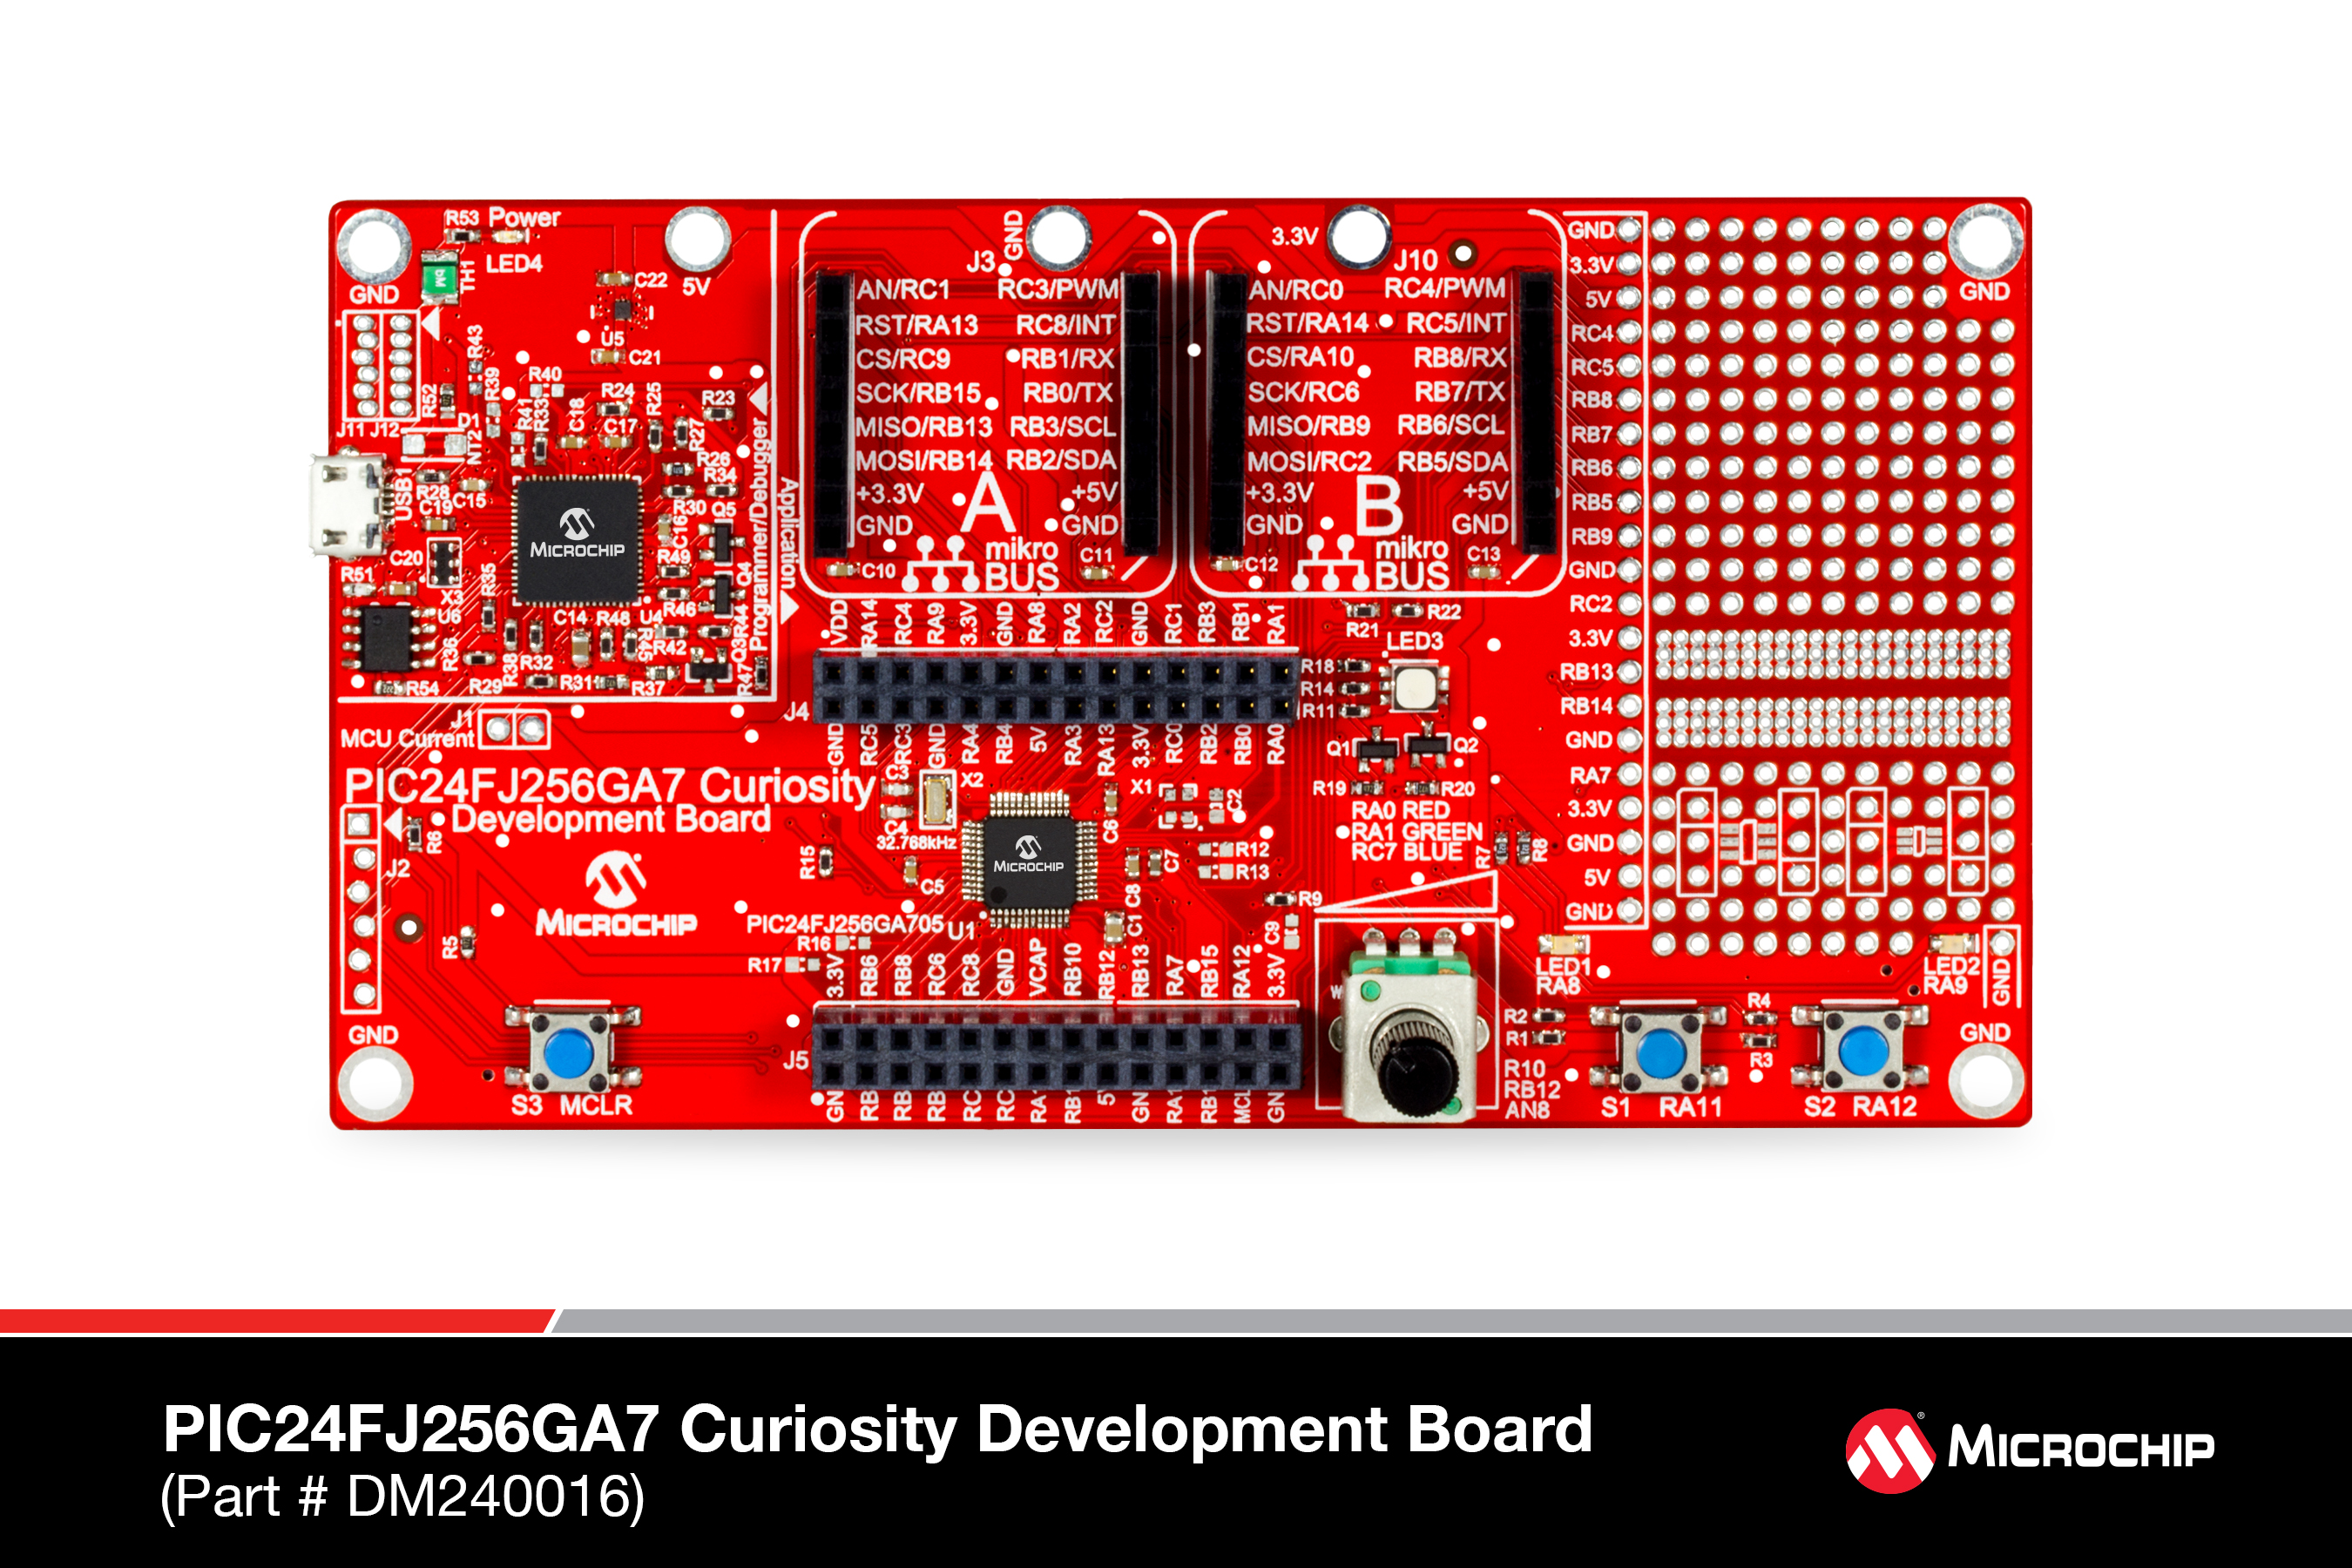 Development Tools Notebook Ide Interface Cdrom To Usb External Drive Circuit Boardred The Pic24fj256ga7 Curiosity Board Is A Cost Effective Fully Integrated 16 Bit Platform Targeted At First Time Users Makers